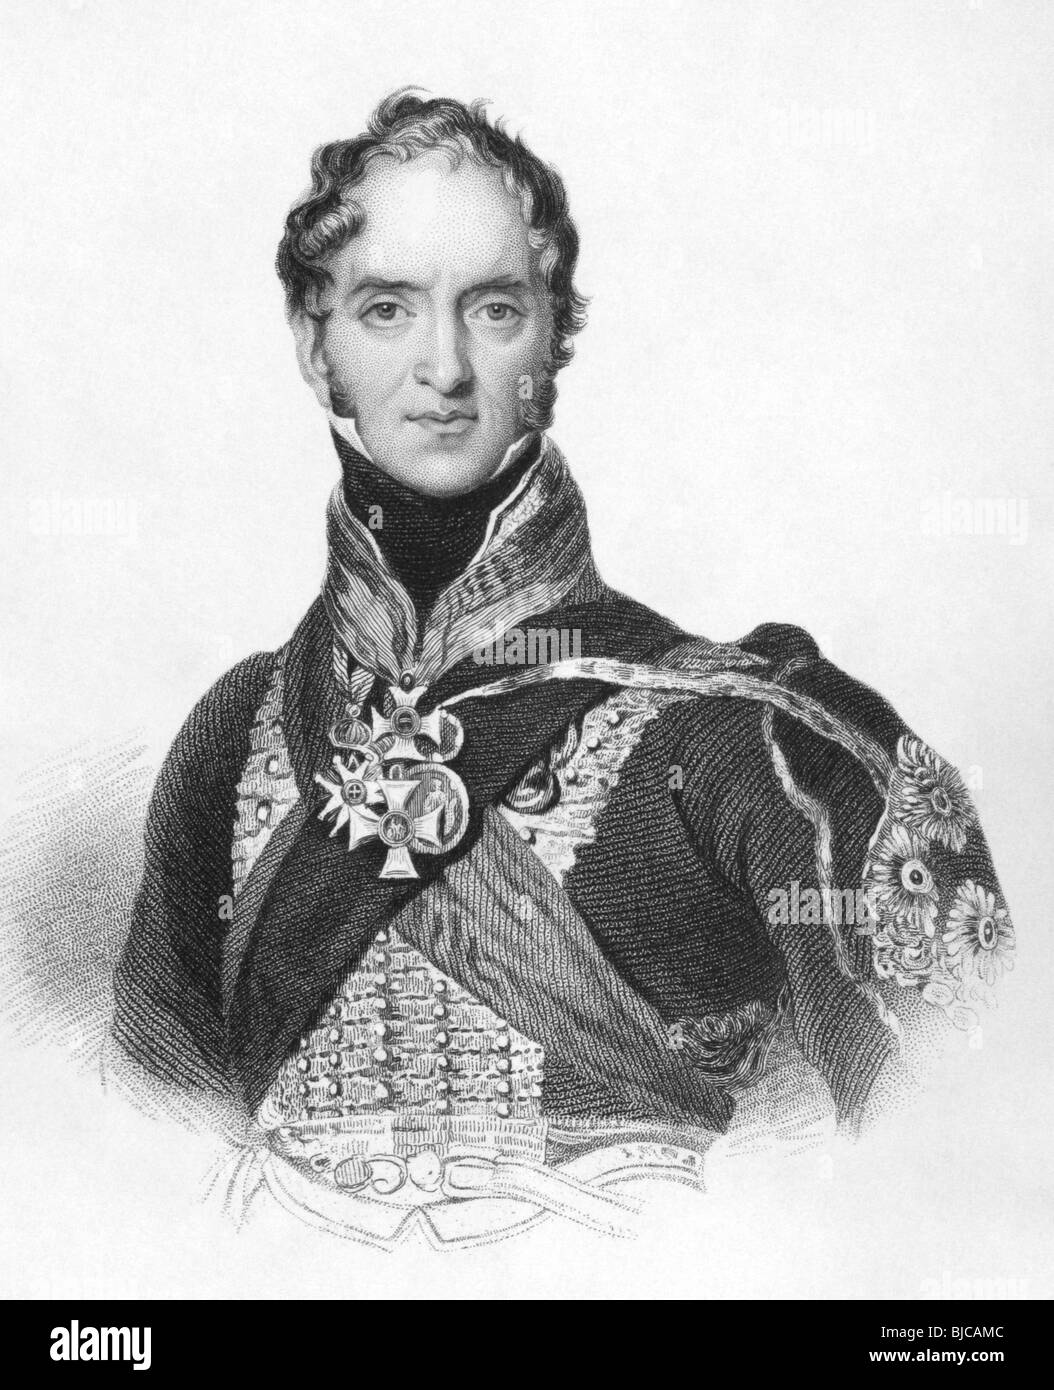 Henry Paget, 1st Marquess of Anglesey (1768-1854) on engraving from the 1800s. British military leader and politician. - Stock Image